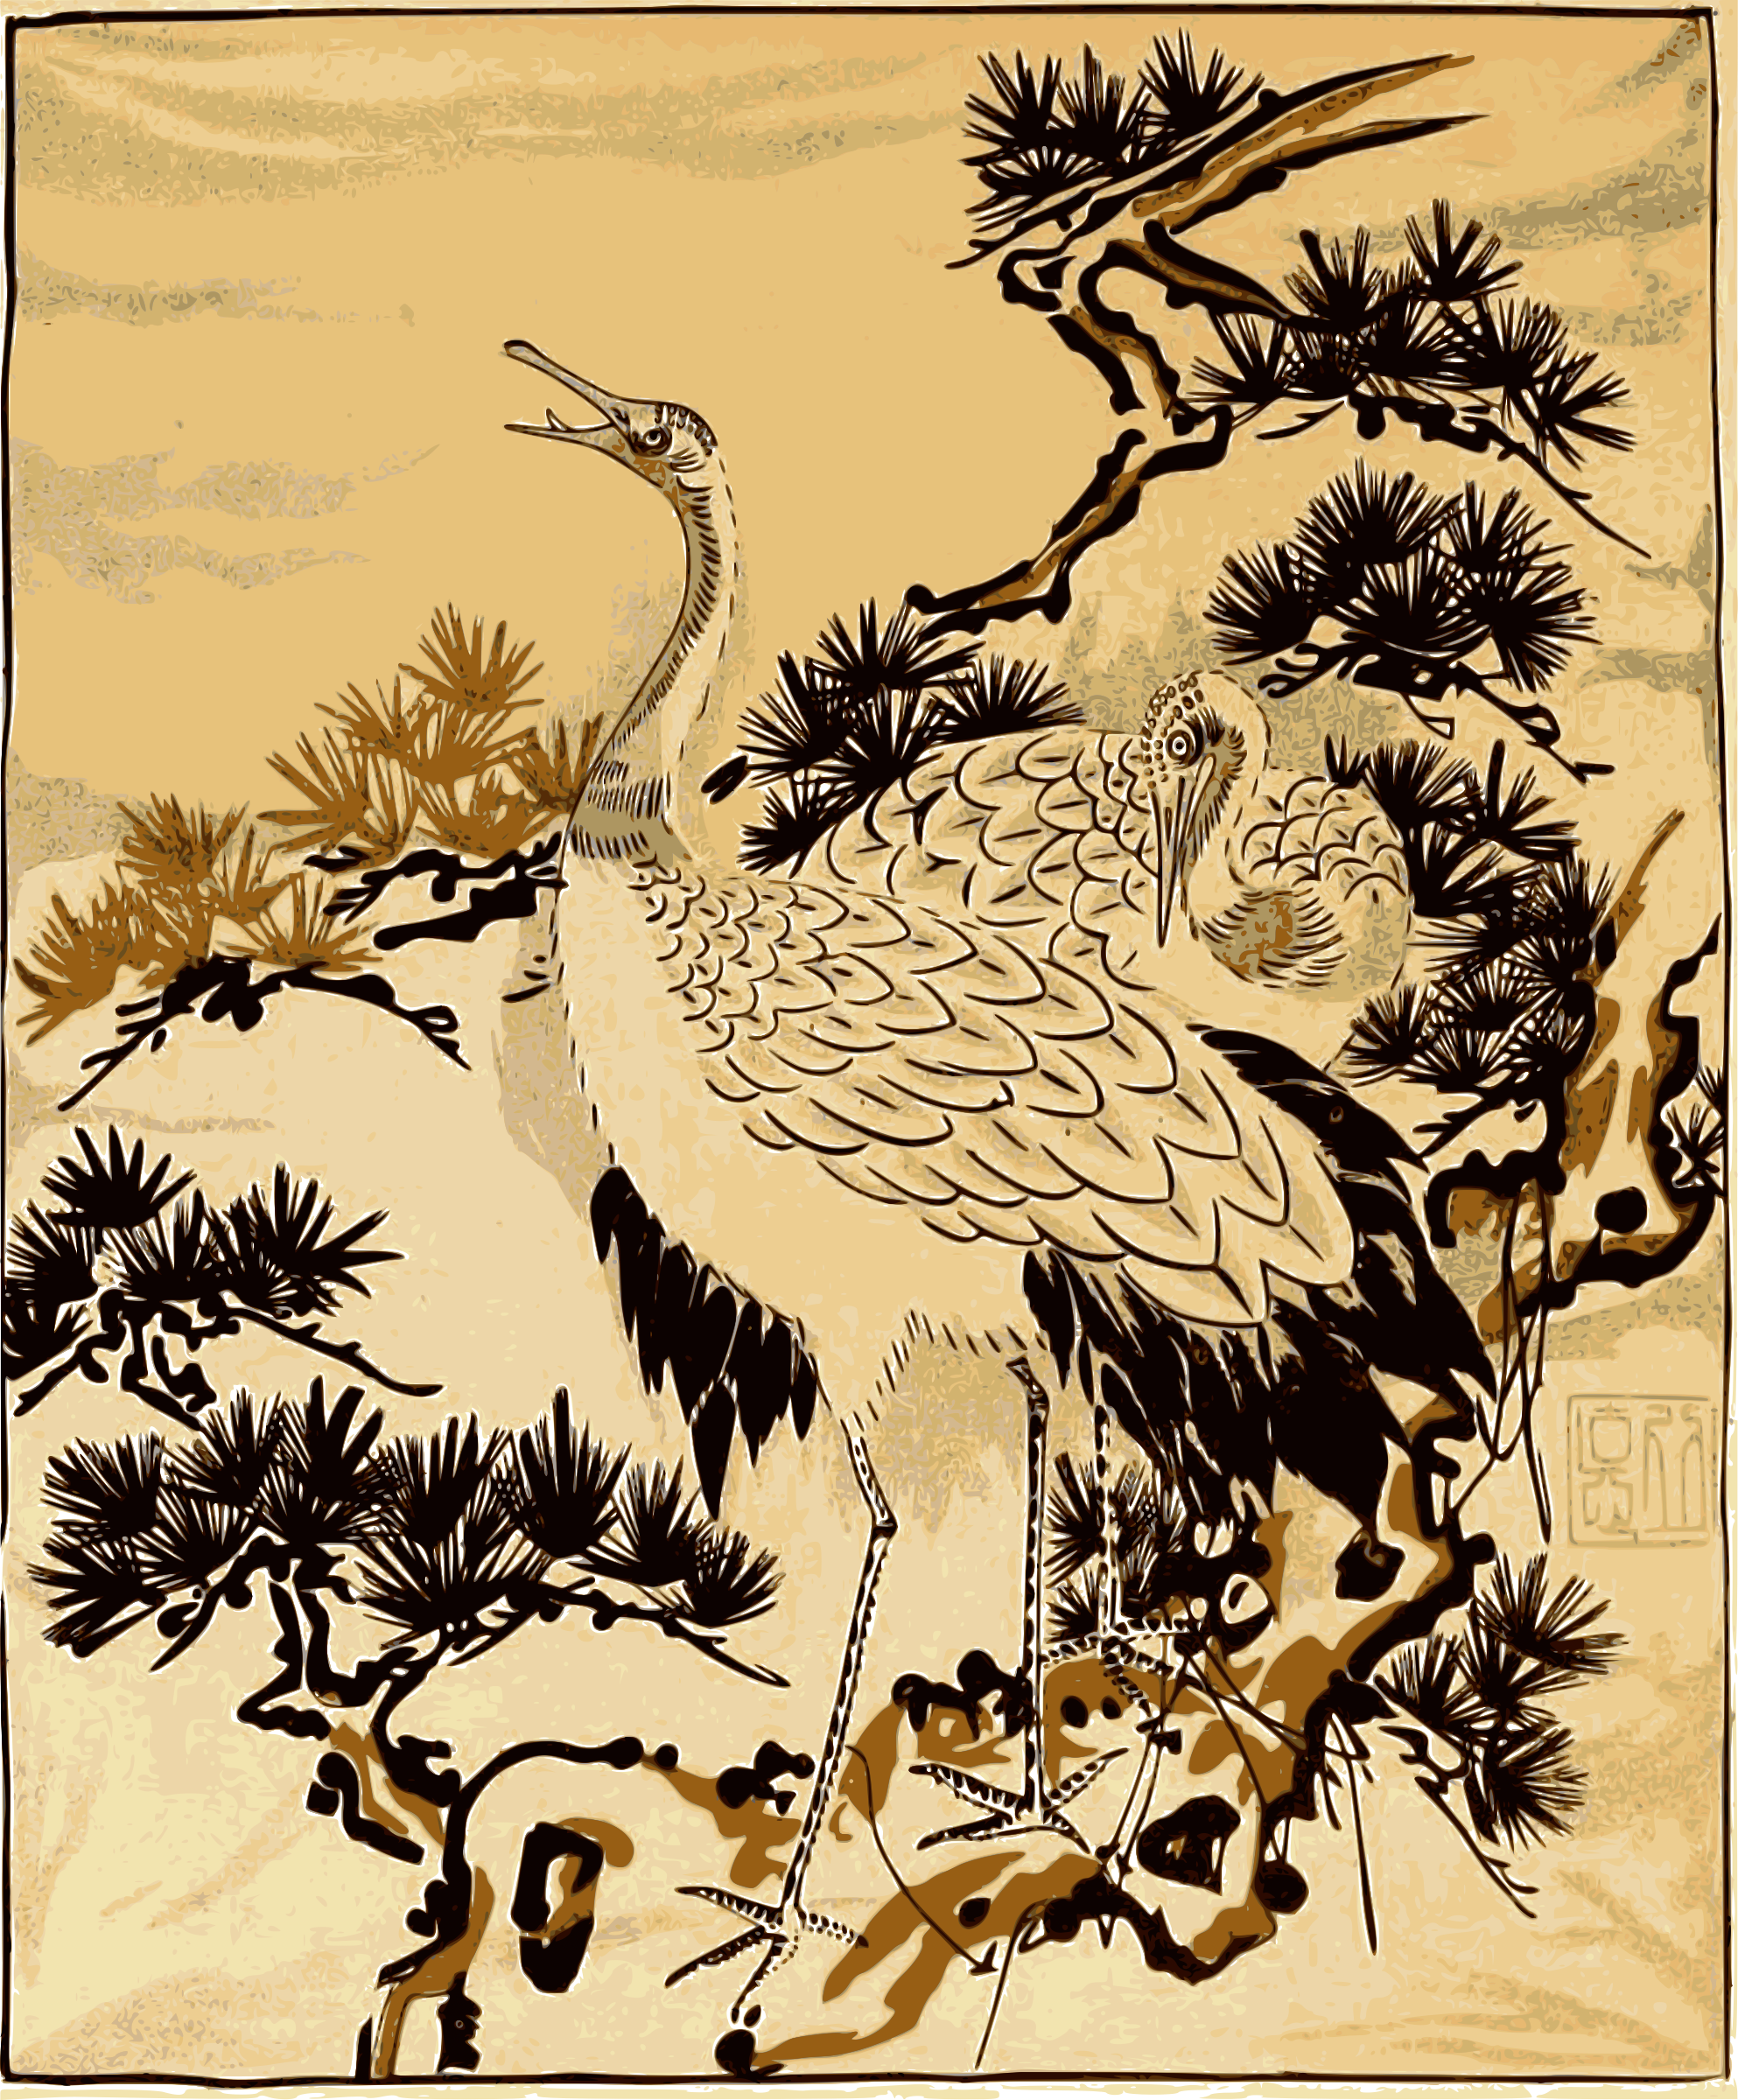 Japanese crane drawing